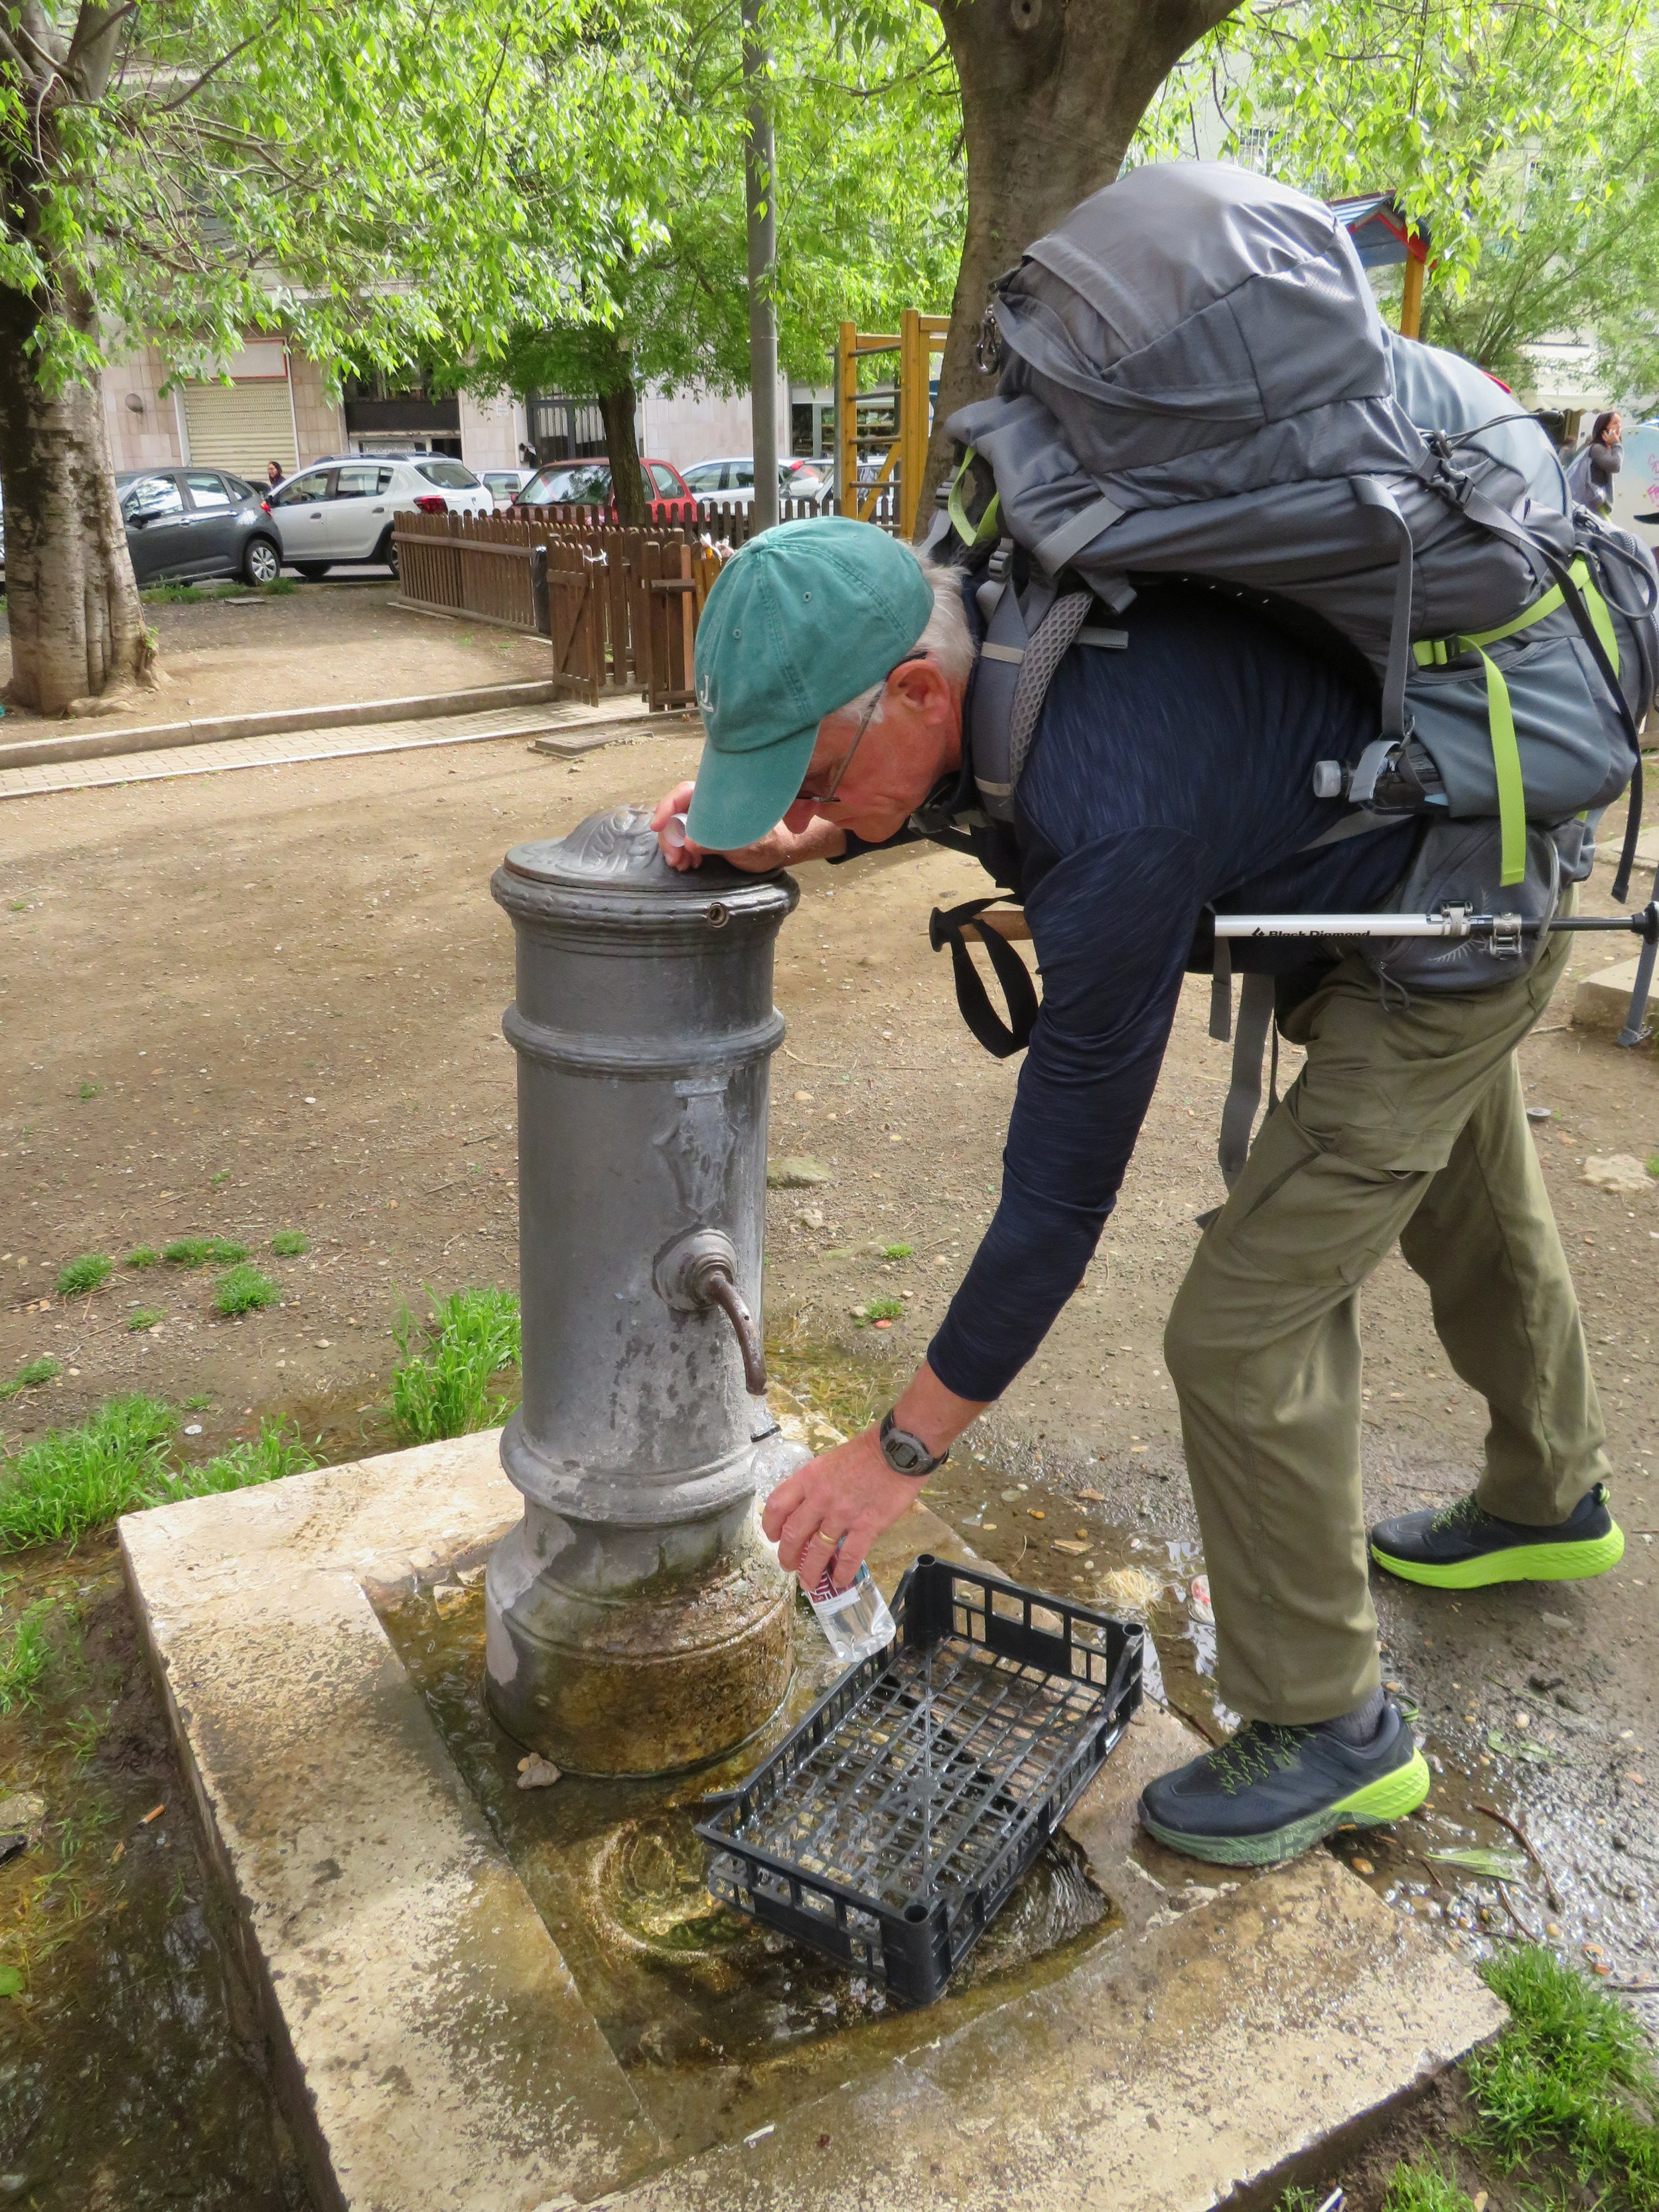 An Italian water fountain. The water was cool and good.